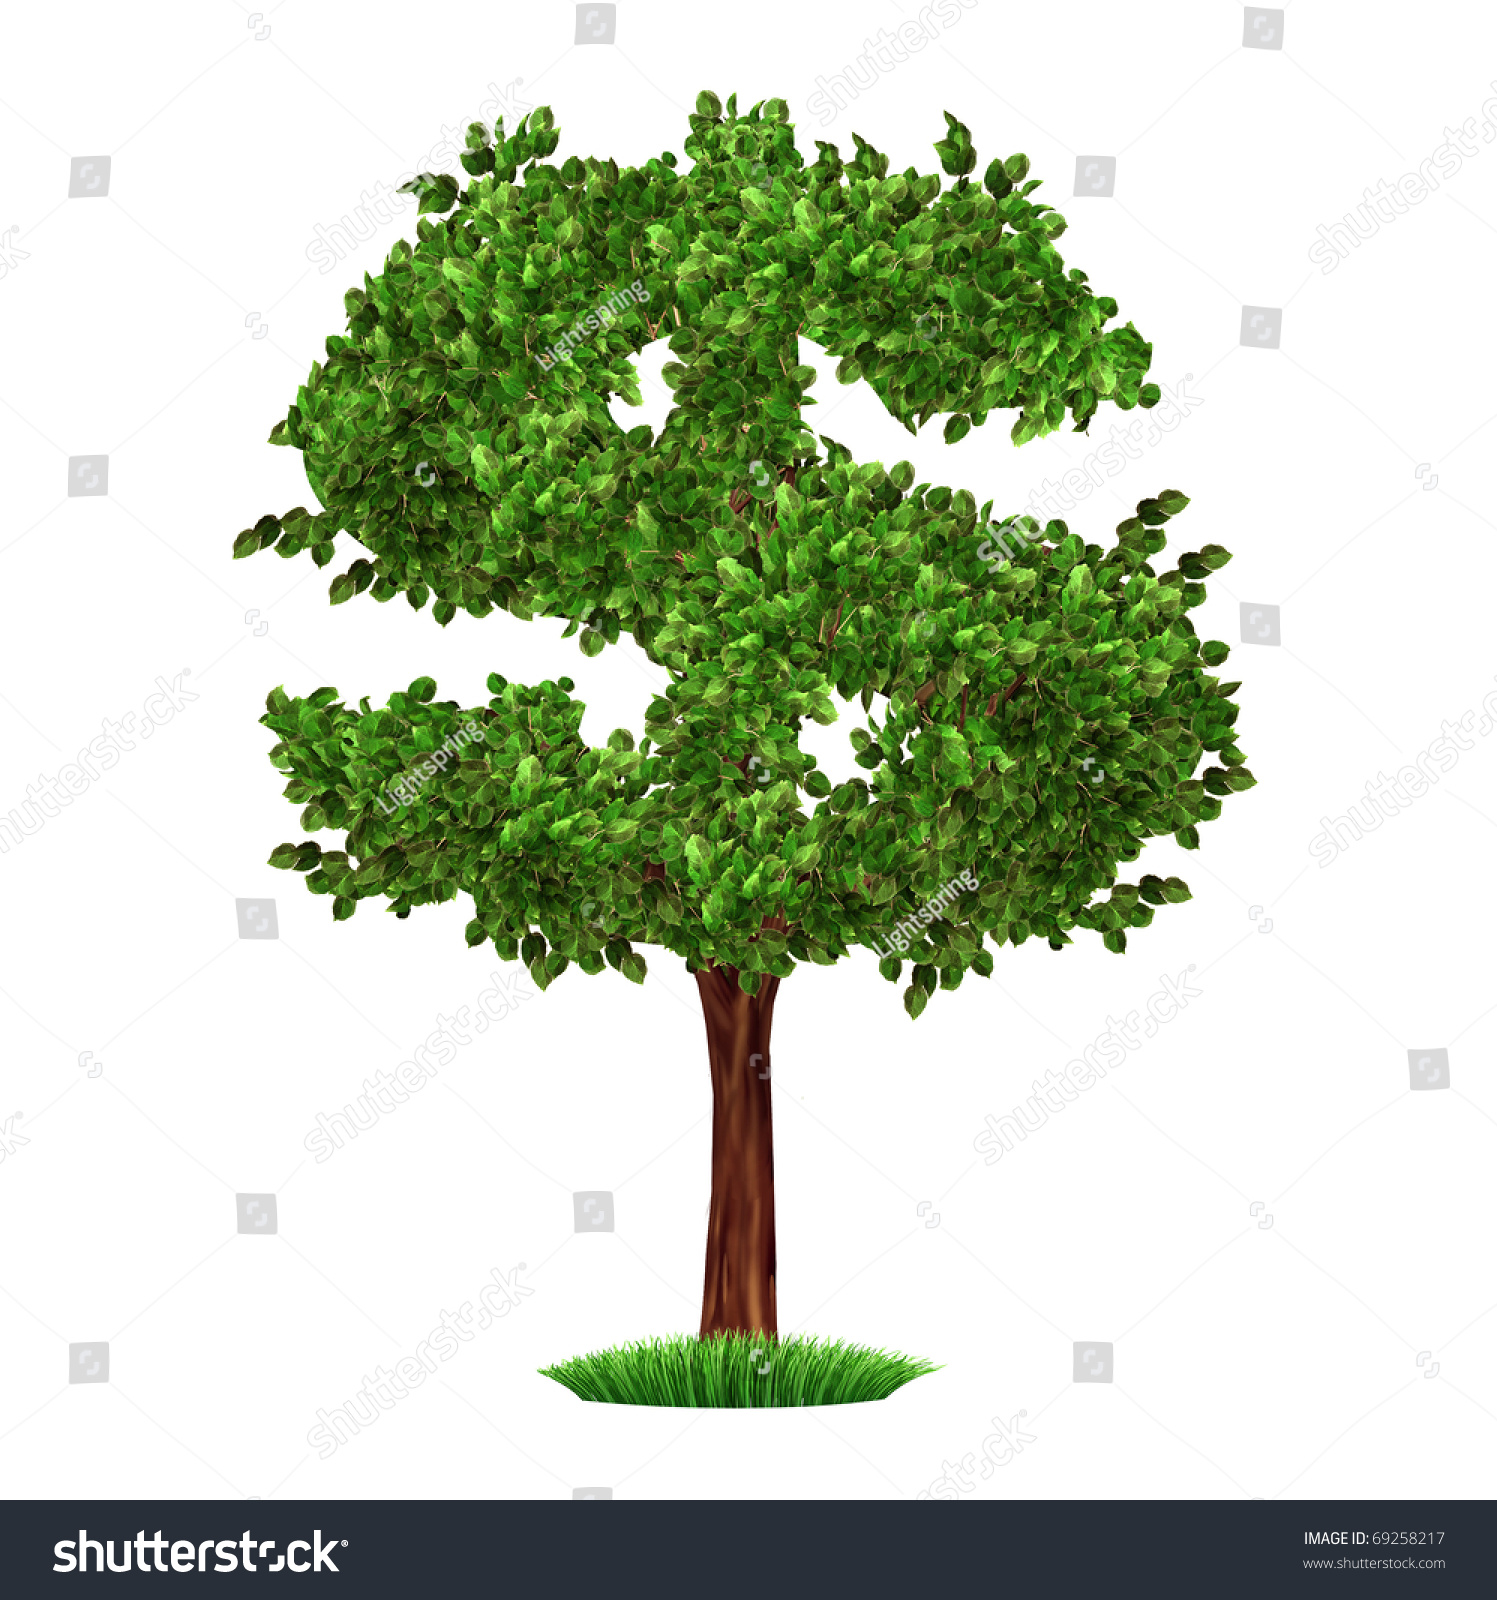 Finance Tree: Money Tree Investment Growth Income Interest Stock